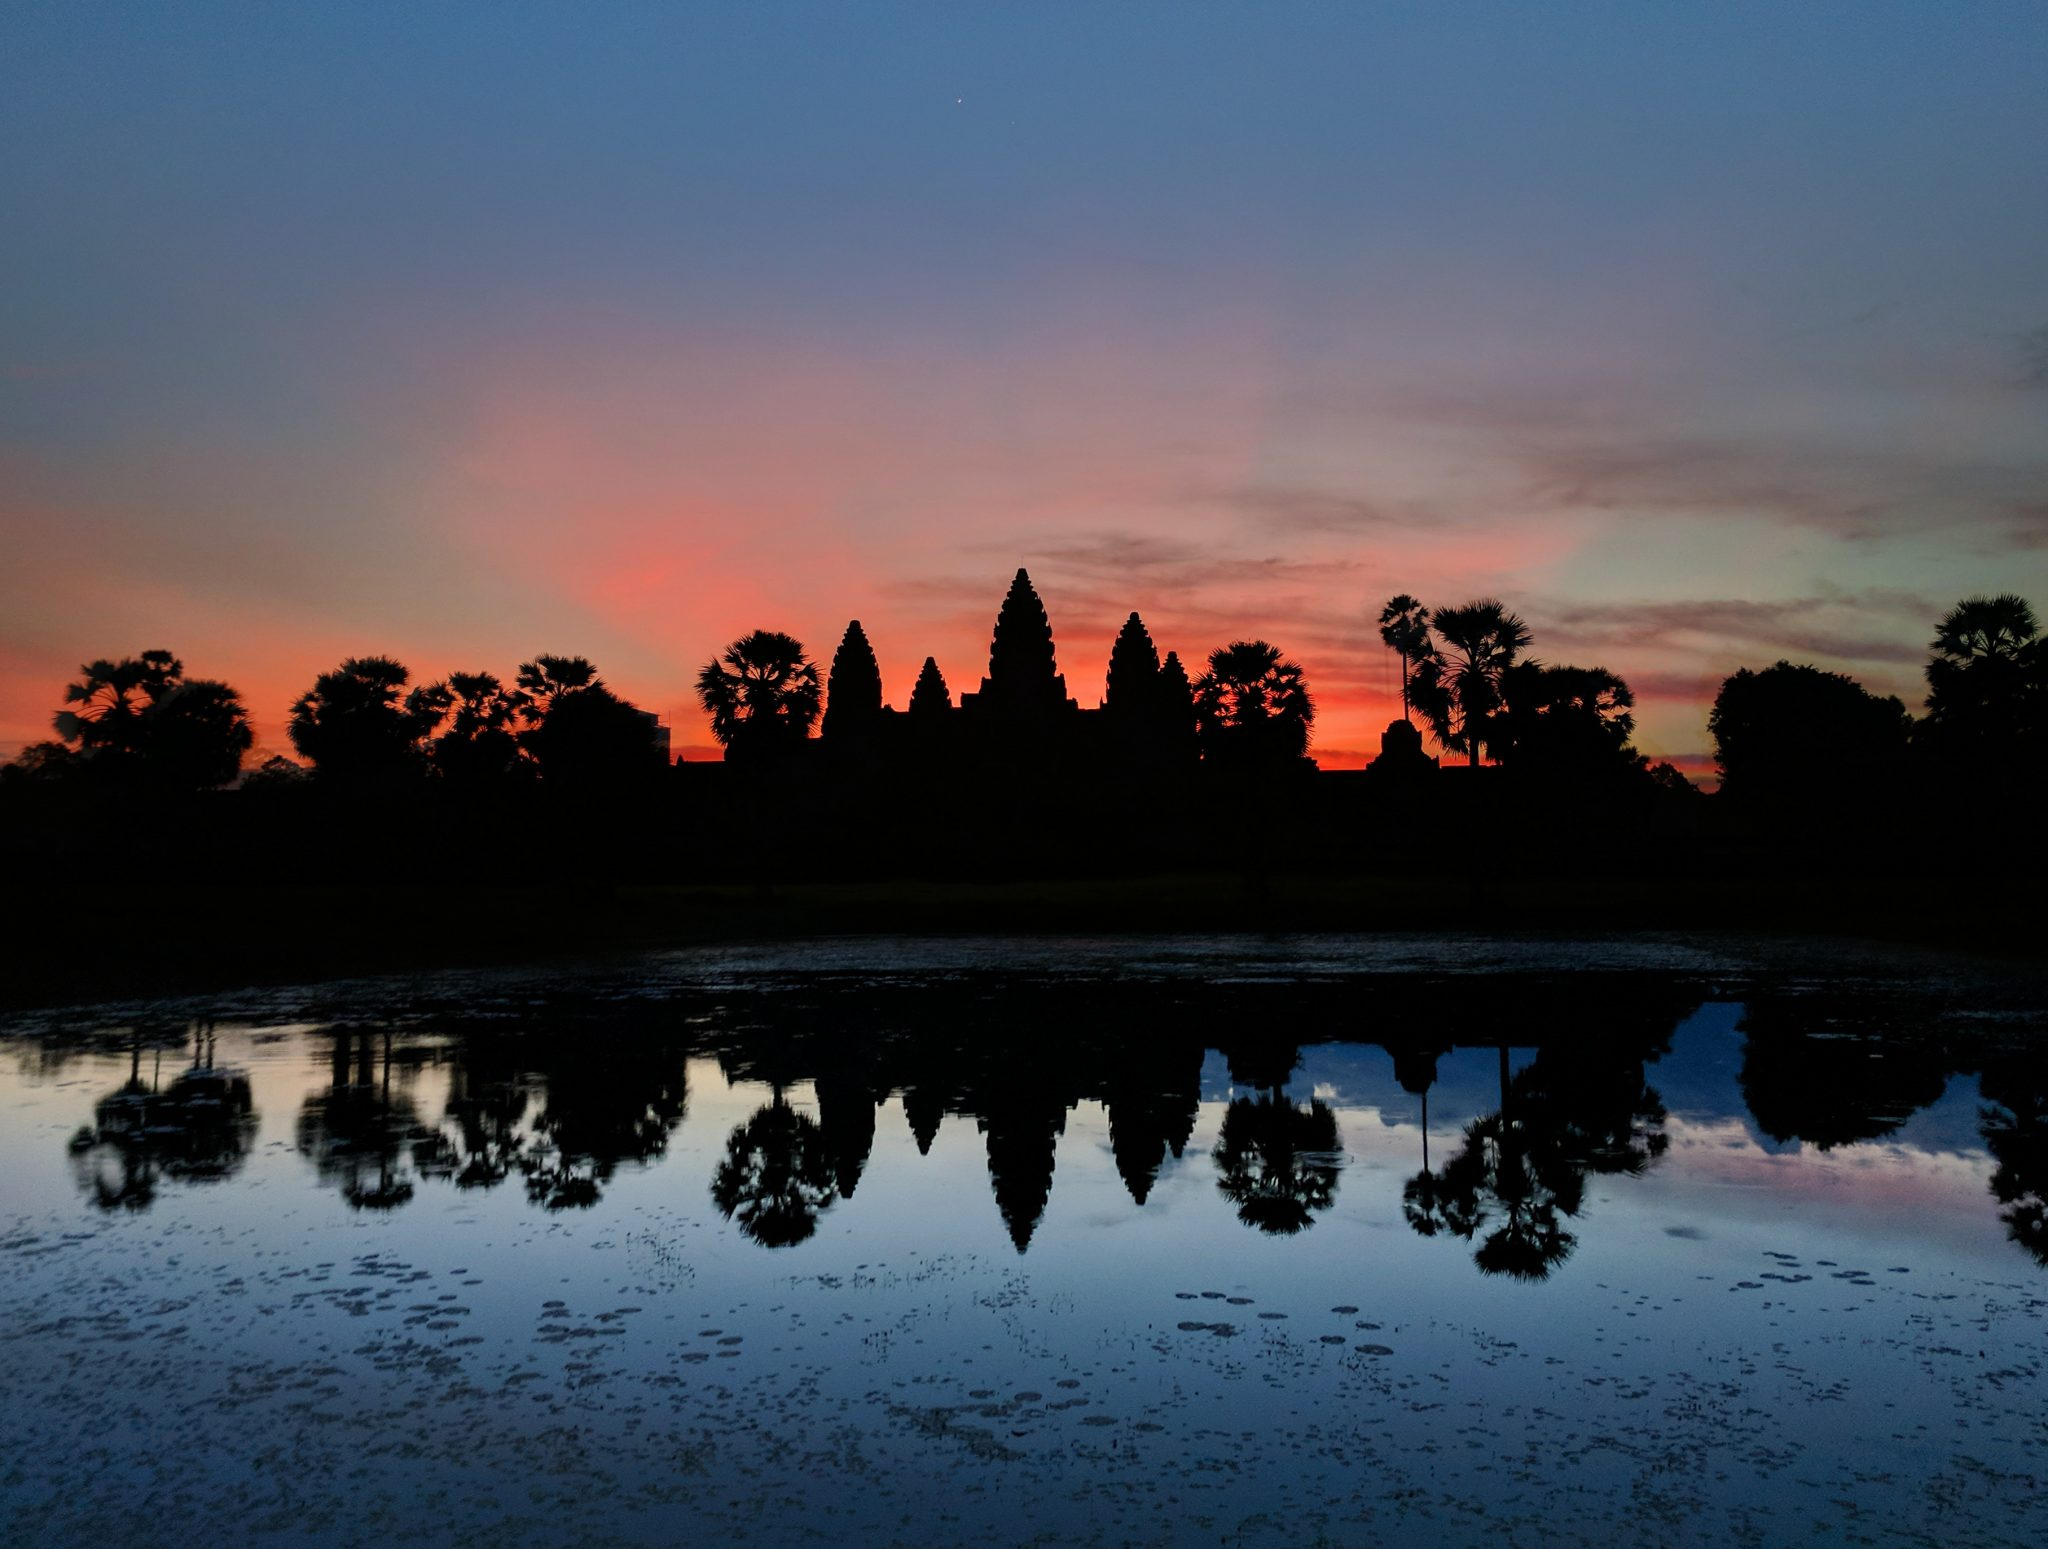 Artistic photo of Angkor Wat